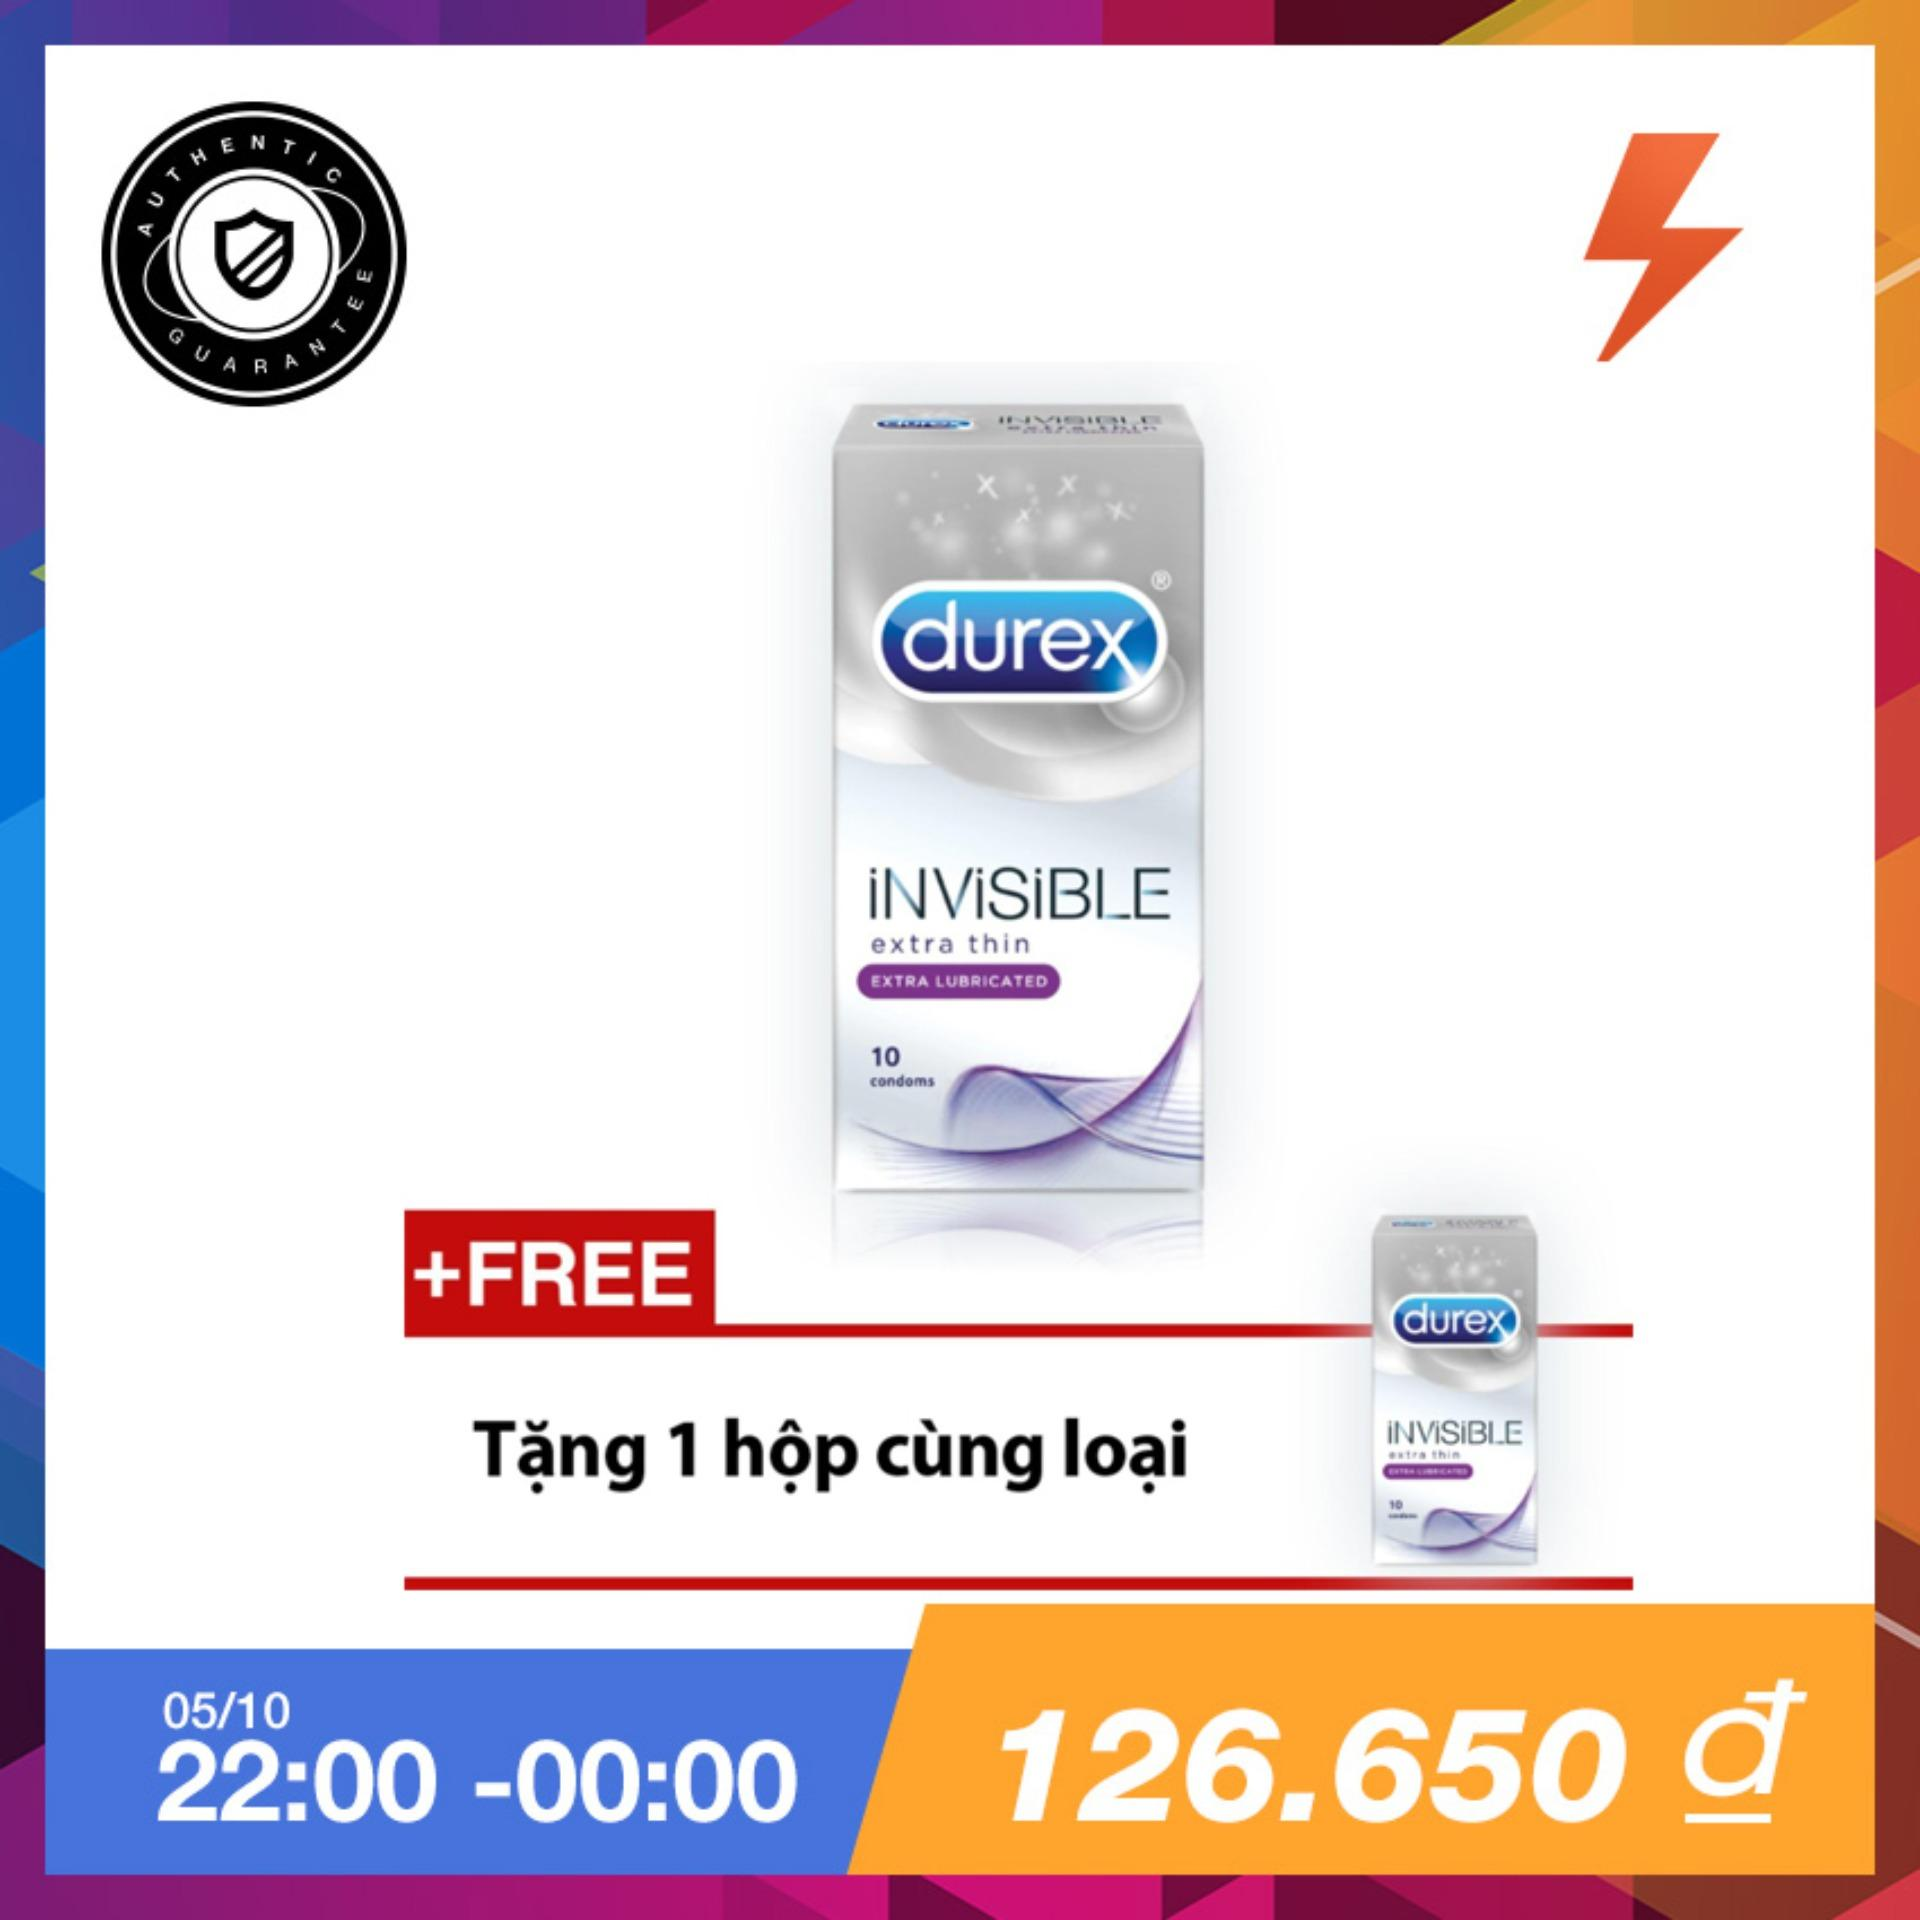 Hộp Bao Cao Su Durex Invisible Extra Lubricant 10 Bao Tặng 1 Hộp Cung Loại Hồ Chí Minh Chiết Khấu 50